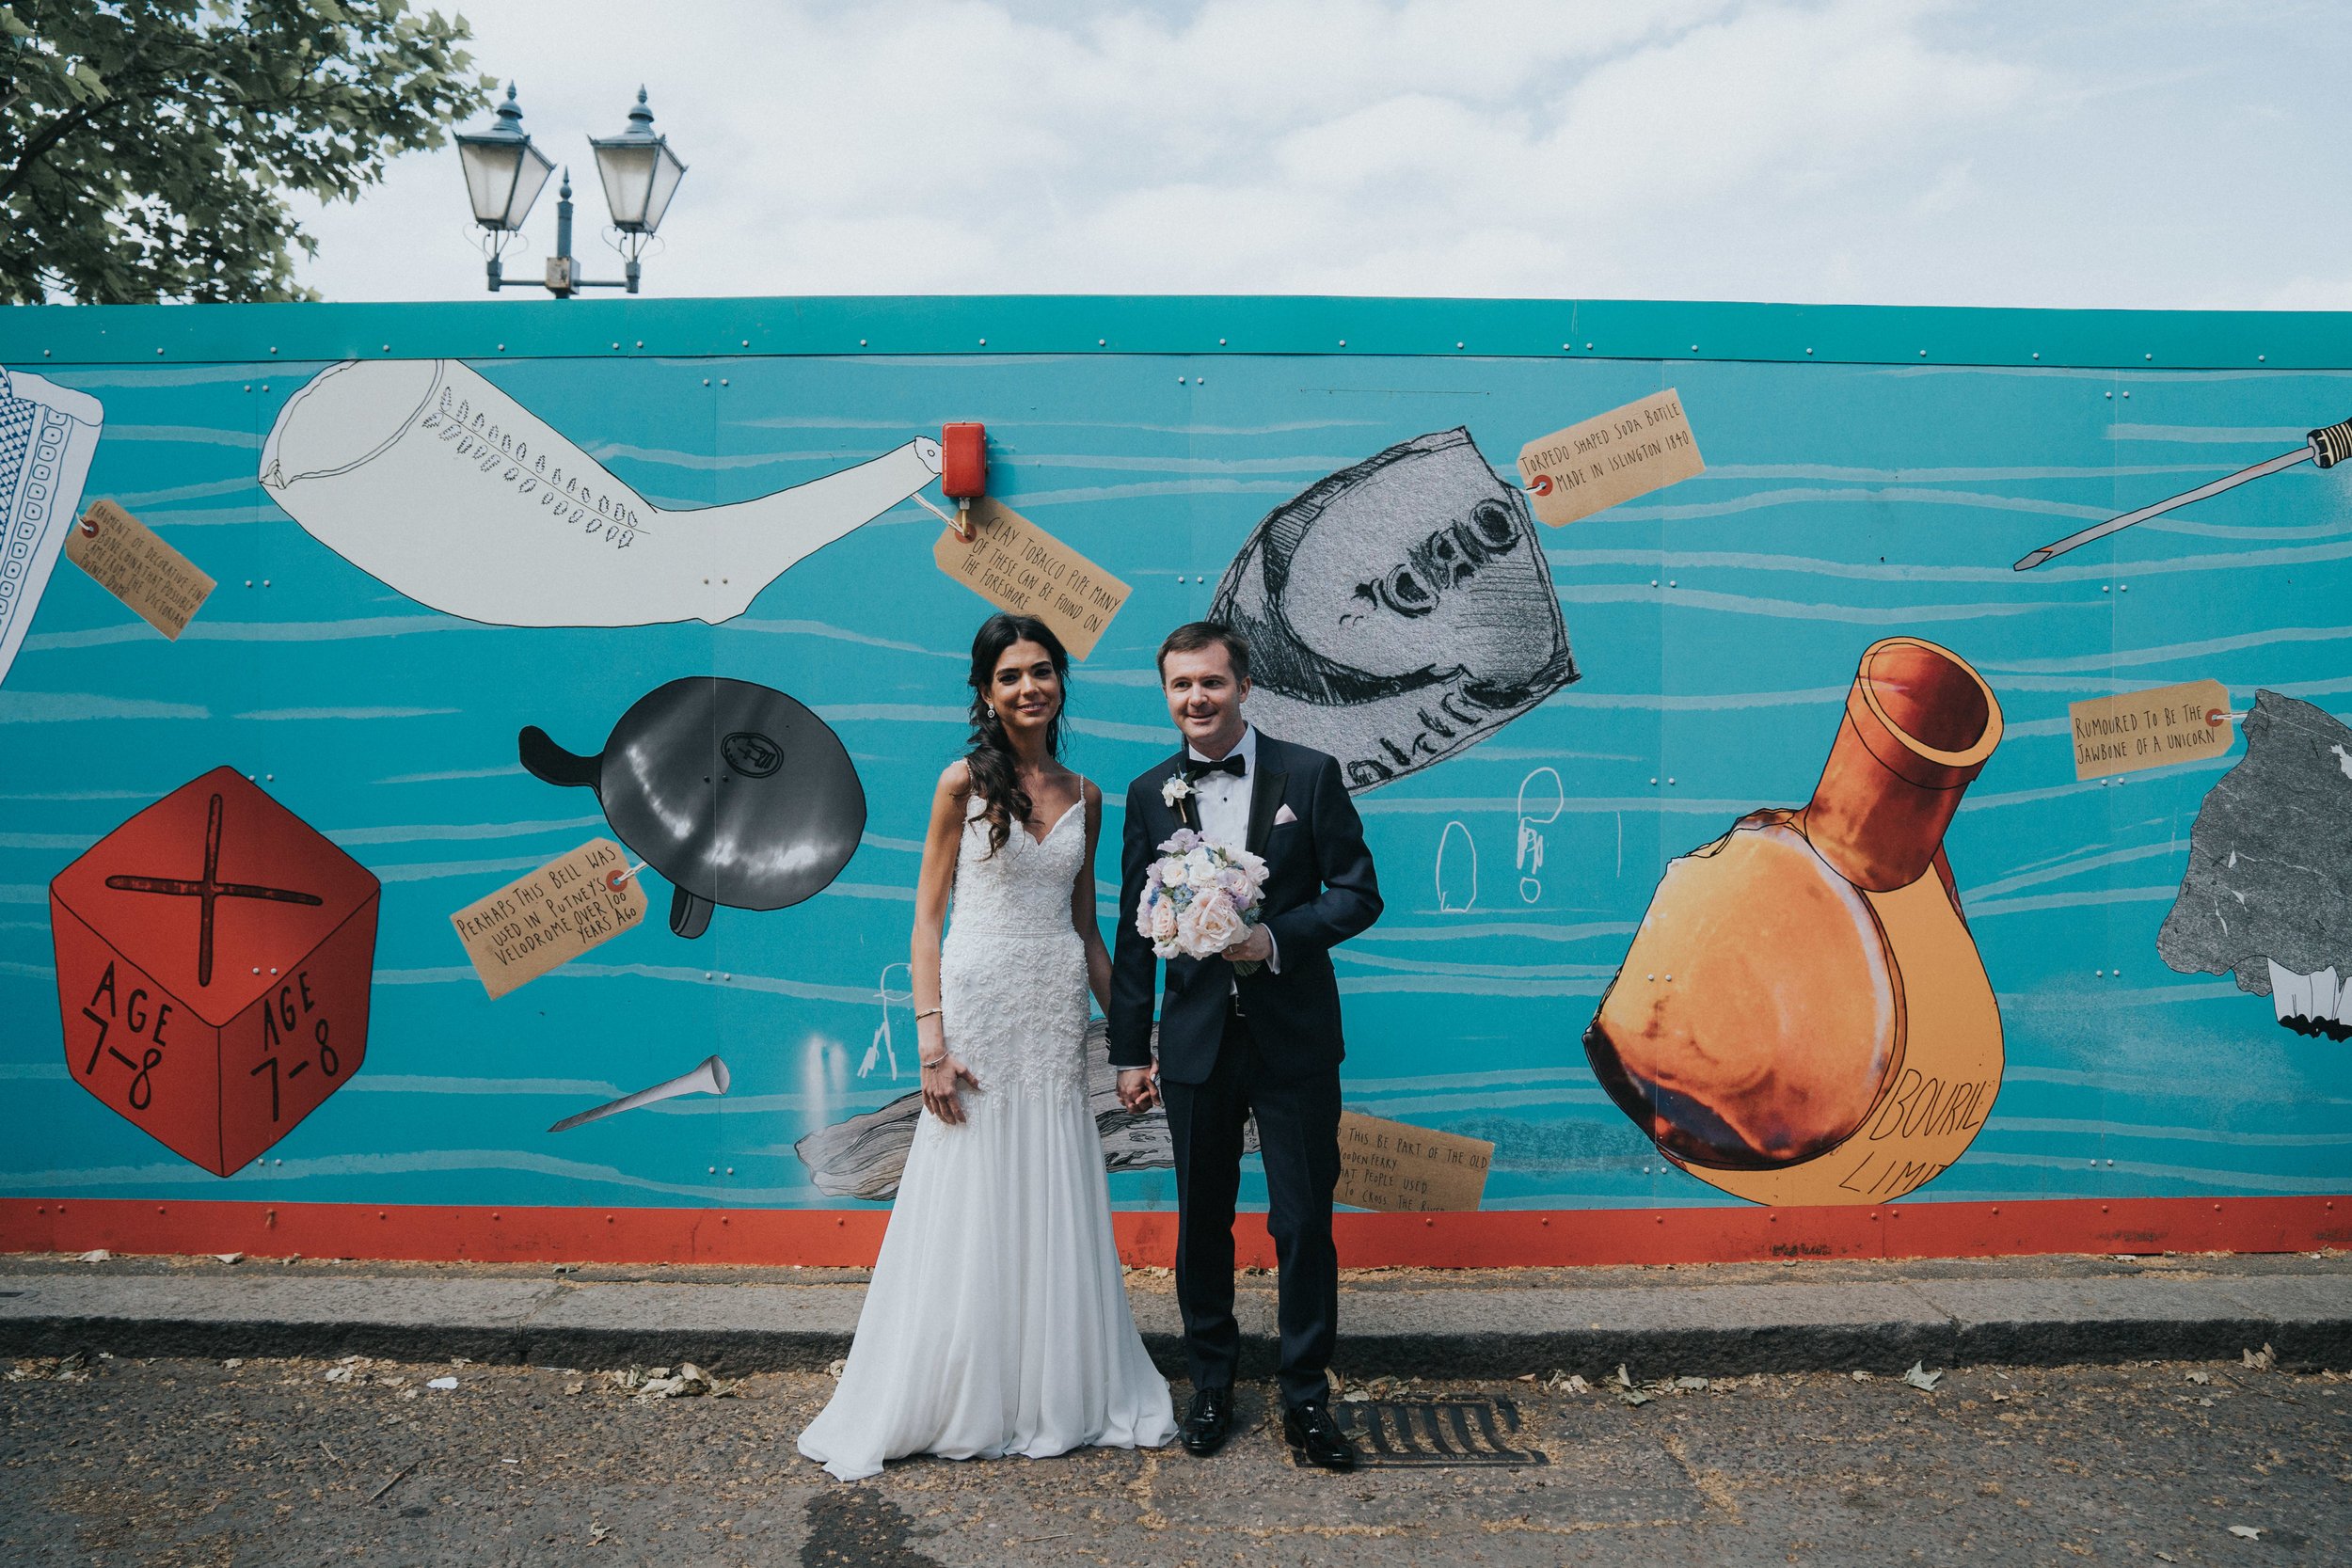 Putney-rowing-club-london-wedding-videography-photography-19